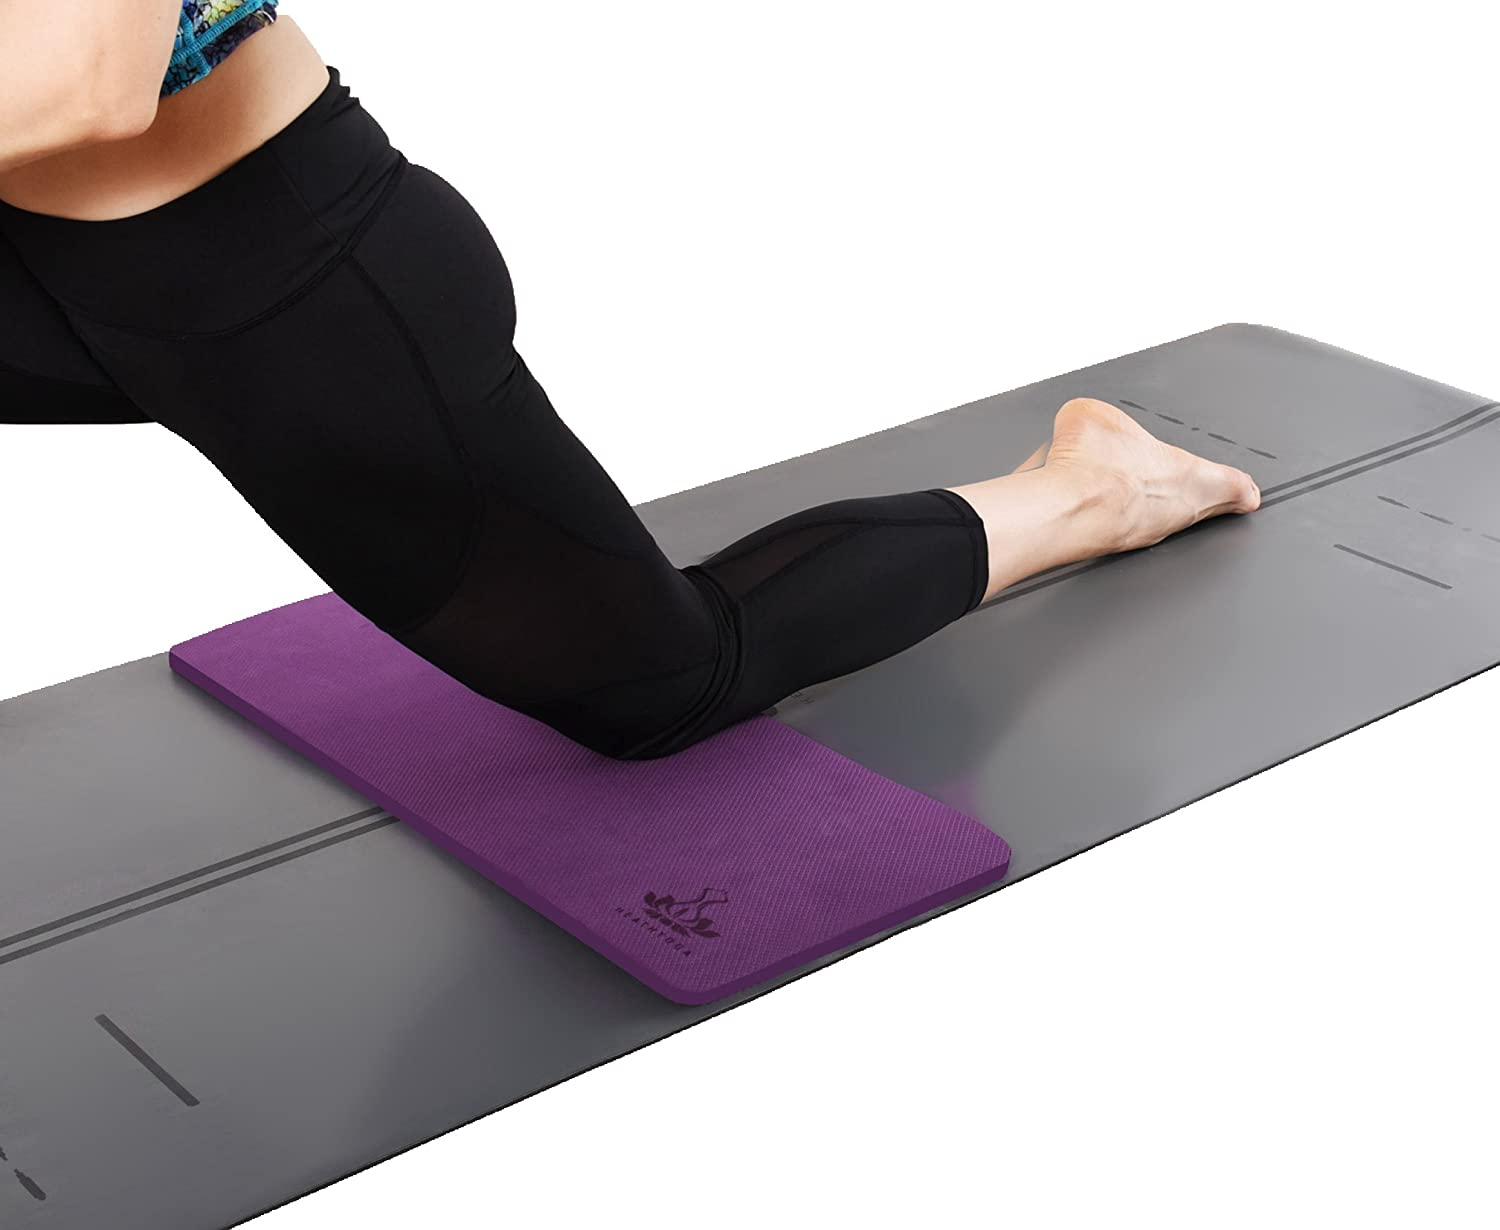 """Heathyoga Yoga Knee Pad, Great for Knees and Elbows While Doing Yoga and Floor Exercises, Kneeling Pad for Gardening, Yard Work and Baby Bath. 26""""x10""""x½"""